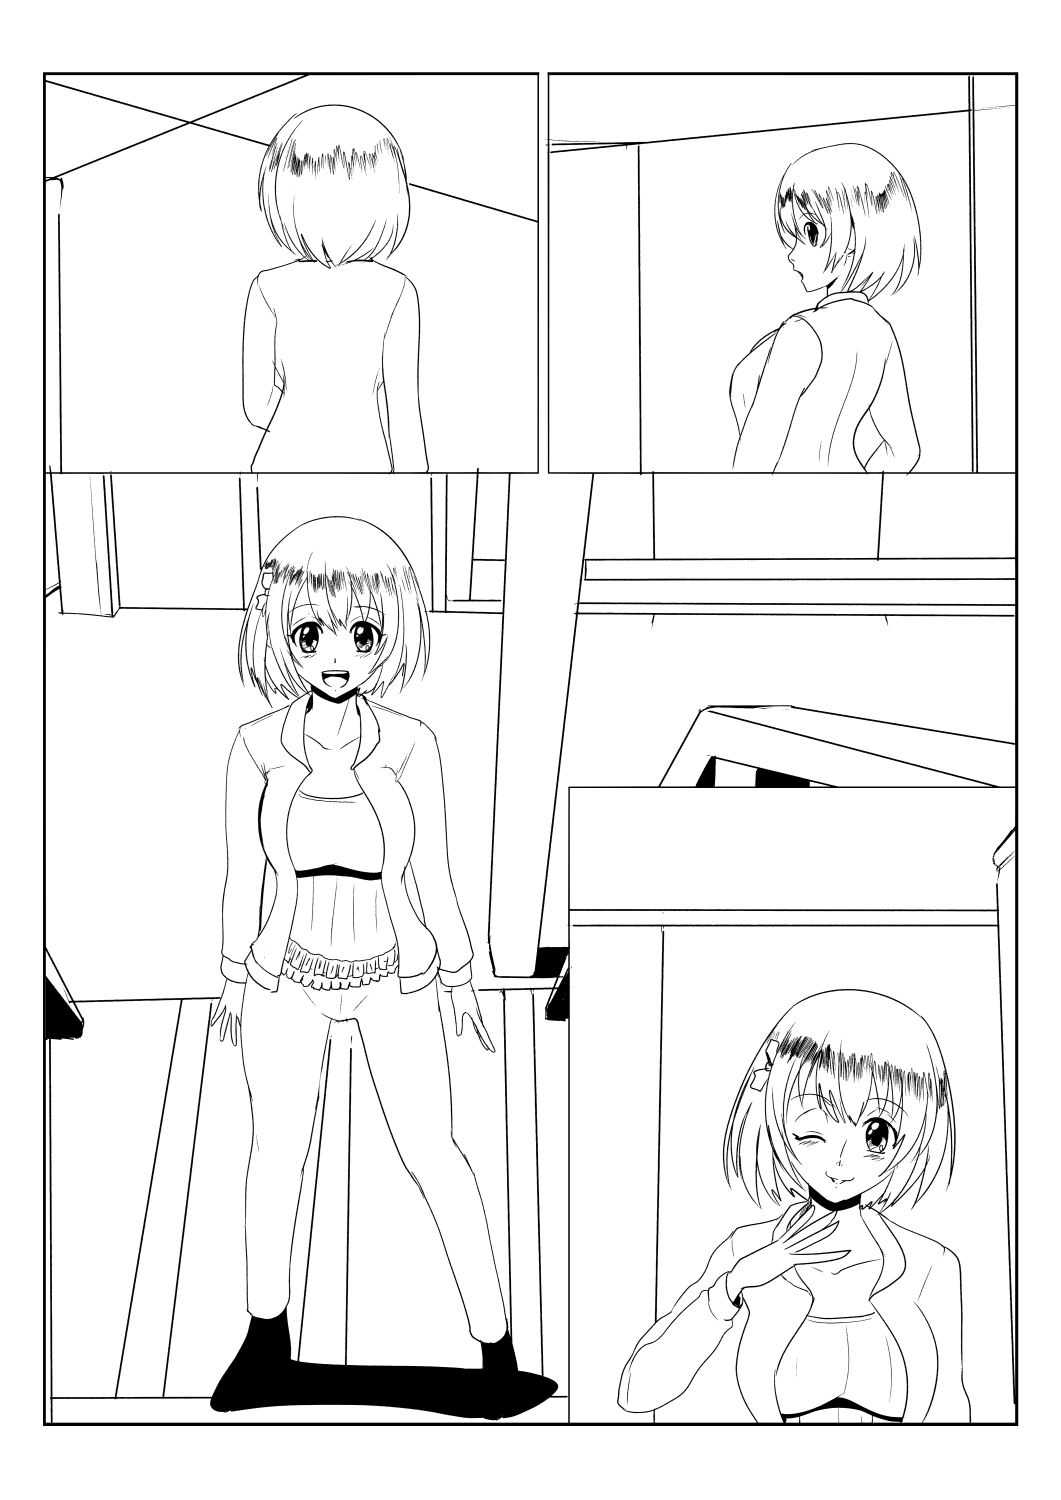 Another Meeting- a Quick Practice Comic Page by wbd